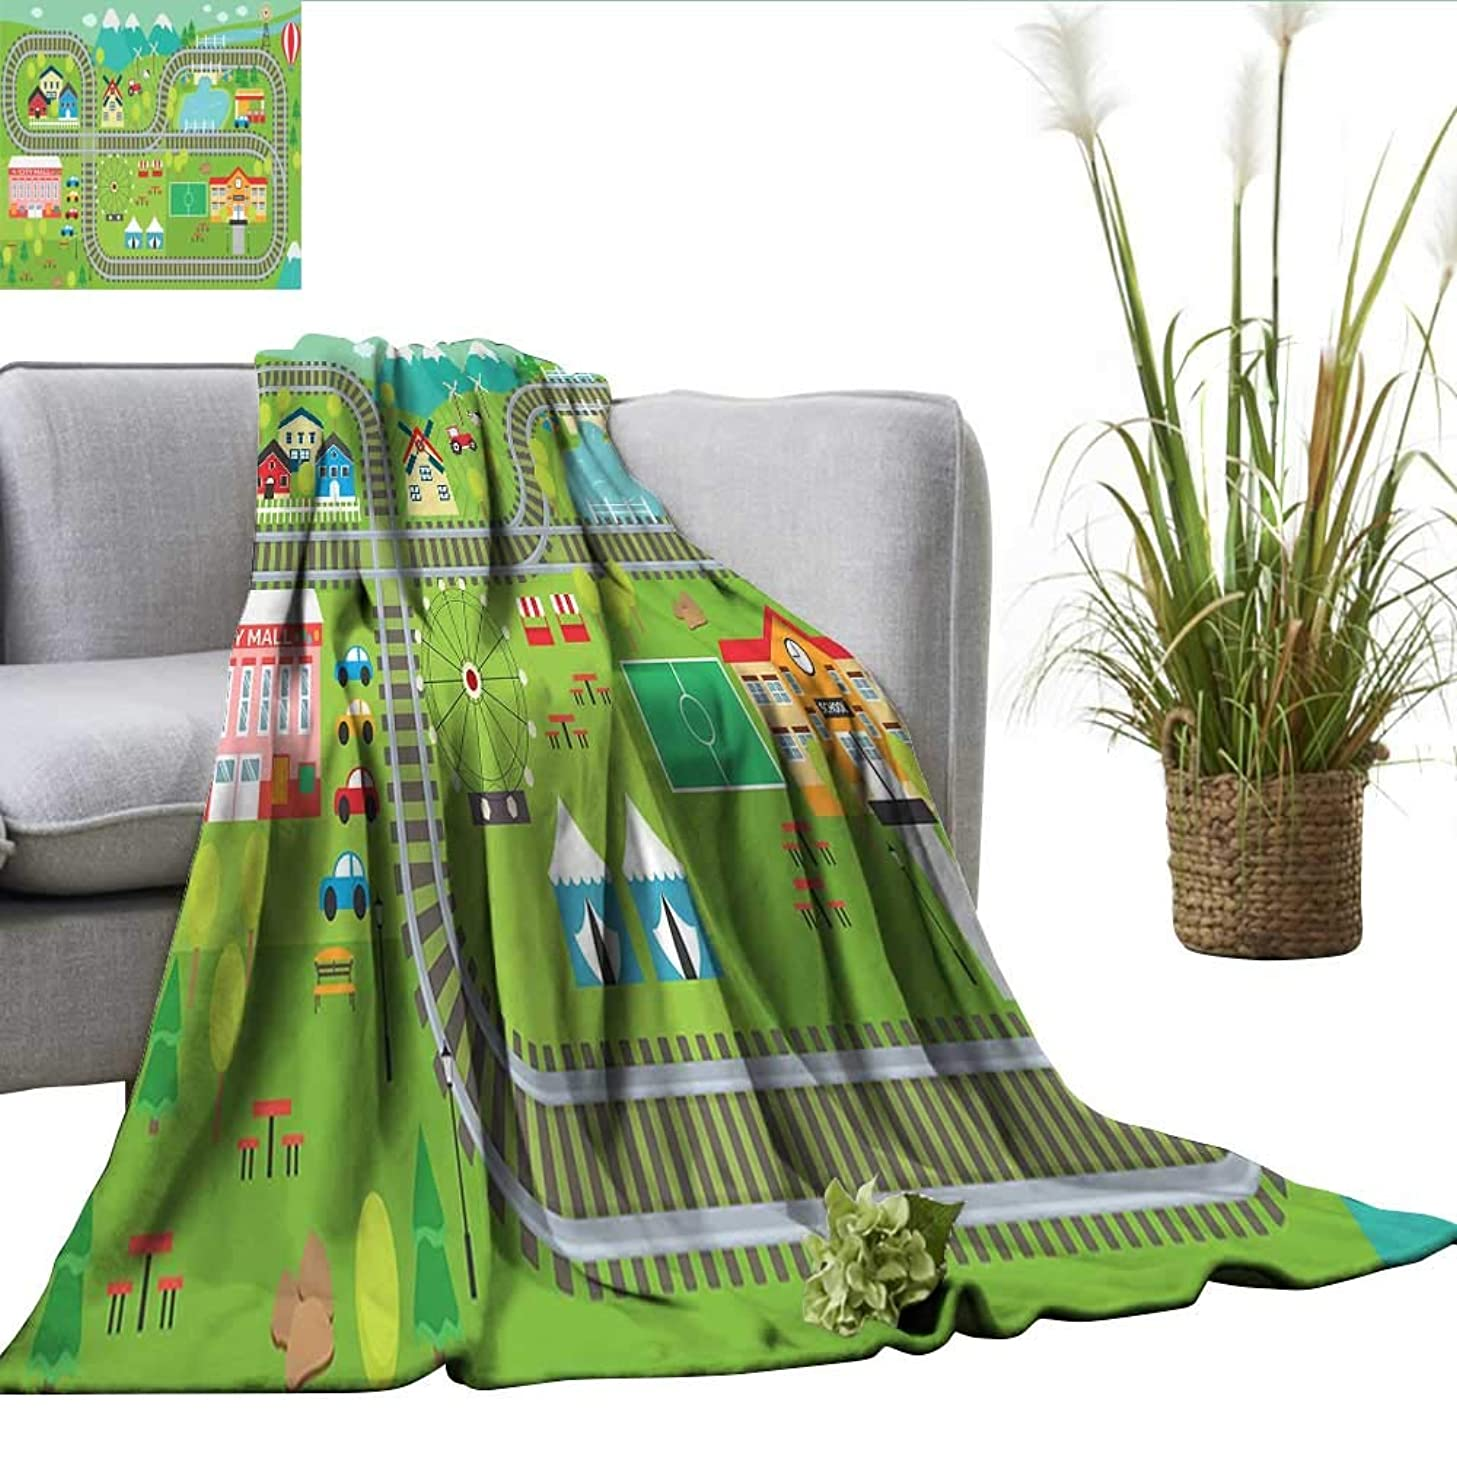 ScottDecor Kids Activity Plush Throw Blanket Train Tracks with Colorful Town School City Mall and Amusement Park Fair Fuzzy Blanket Multicolor W60 xL80